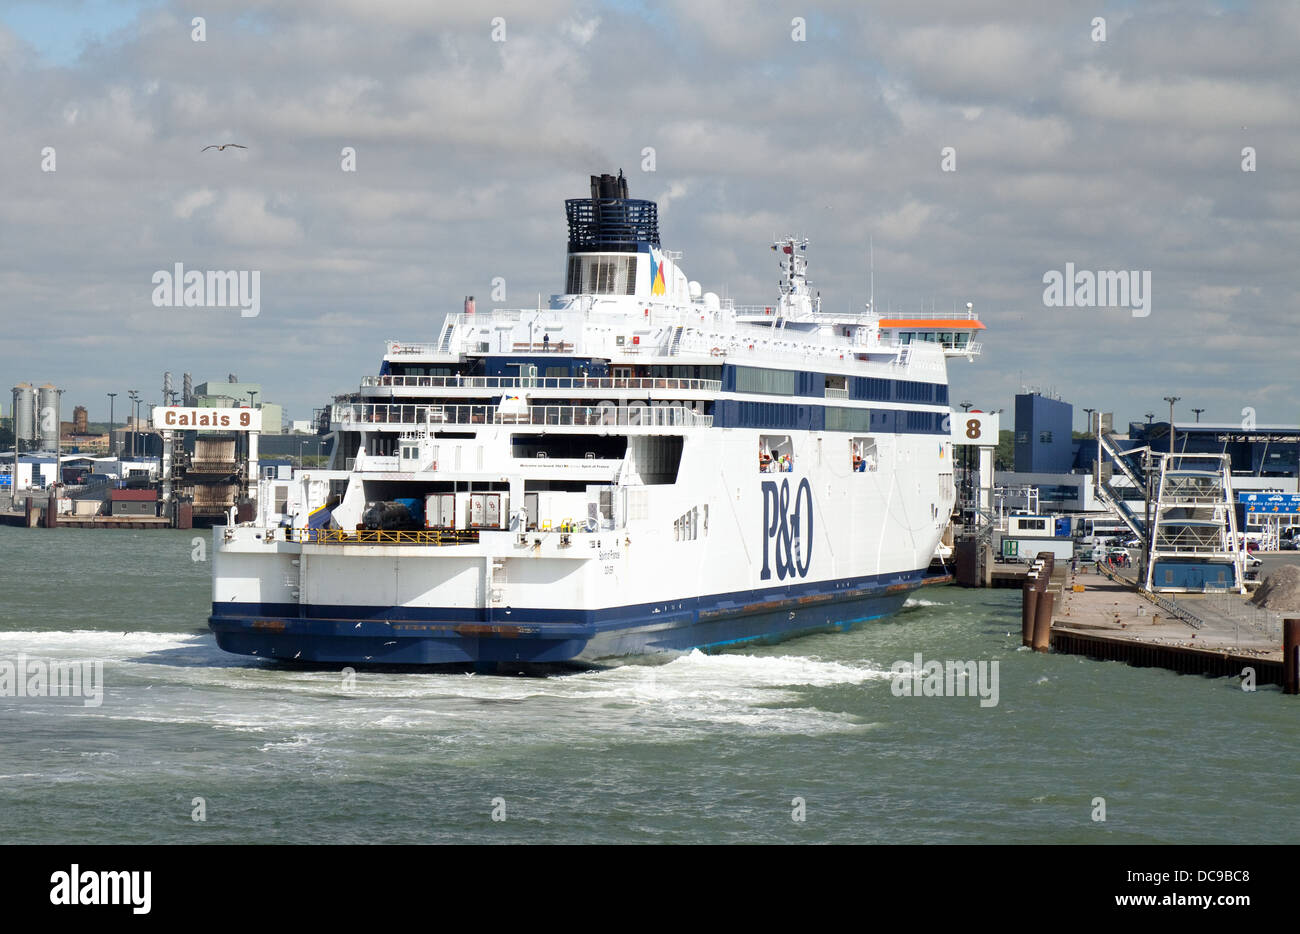 The 'Spirit of France' P&O ferry arriving at Calais harbour, Calais, France Europe - Stock Image